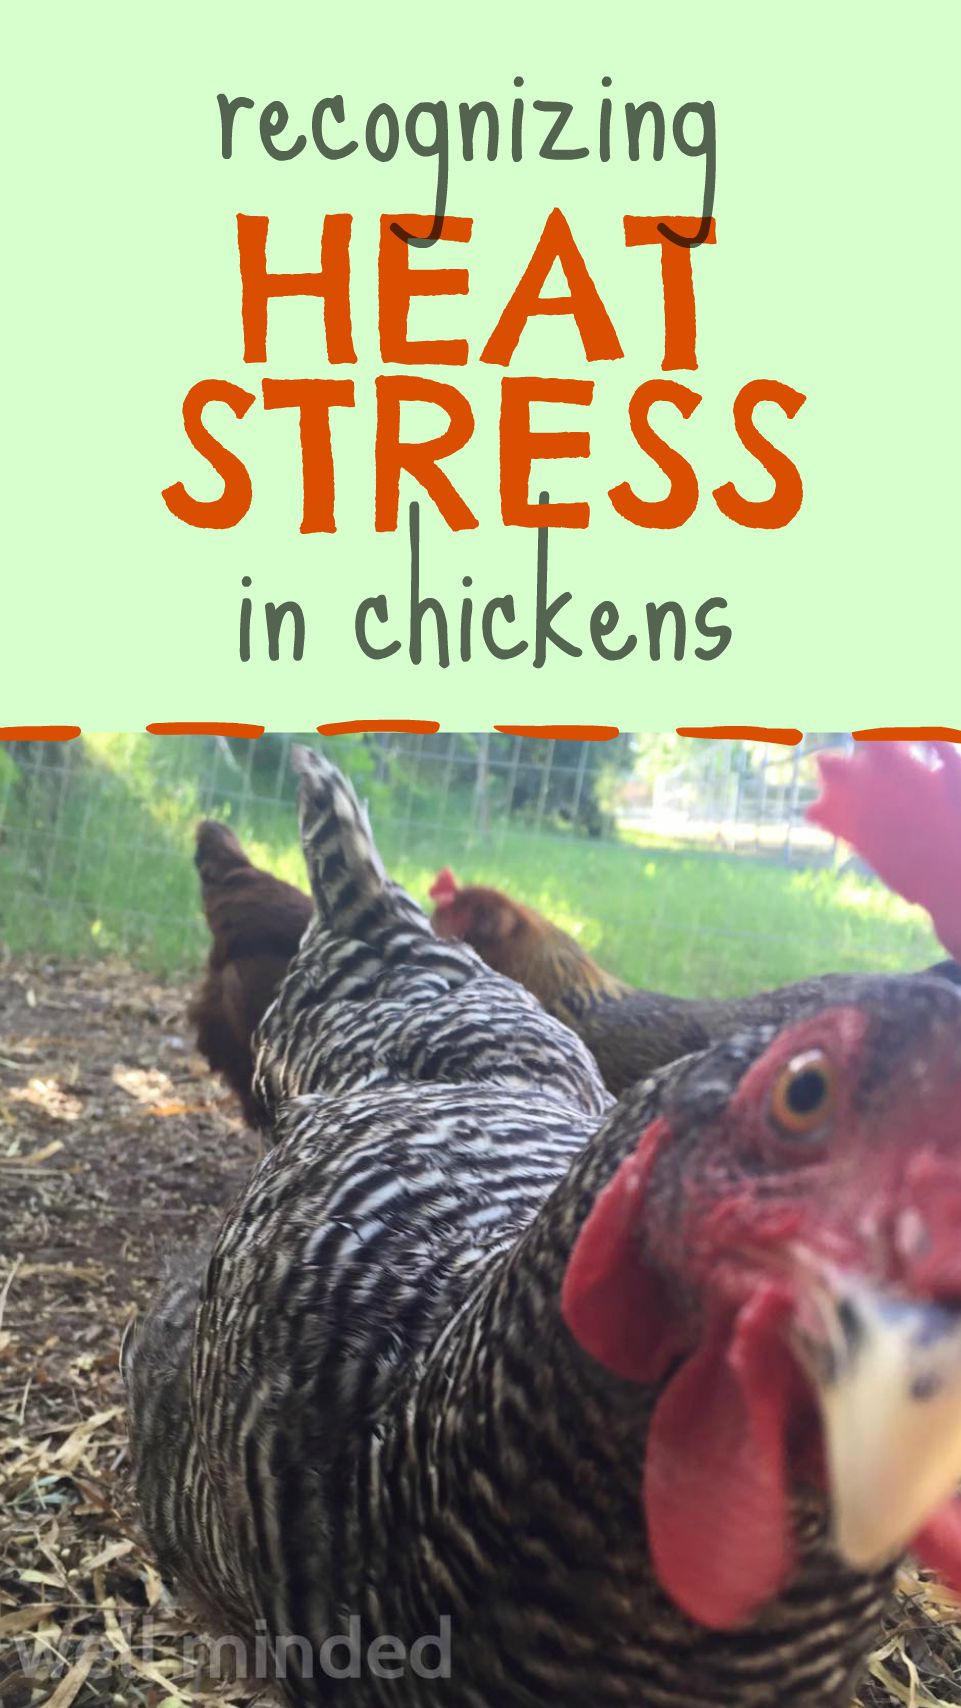 Recognizing heat stress in chickens and how to prevent and treat an overheated chicken.